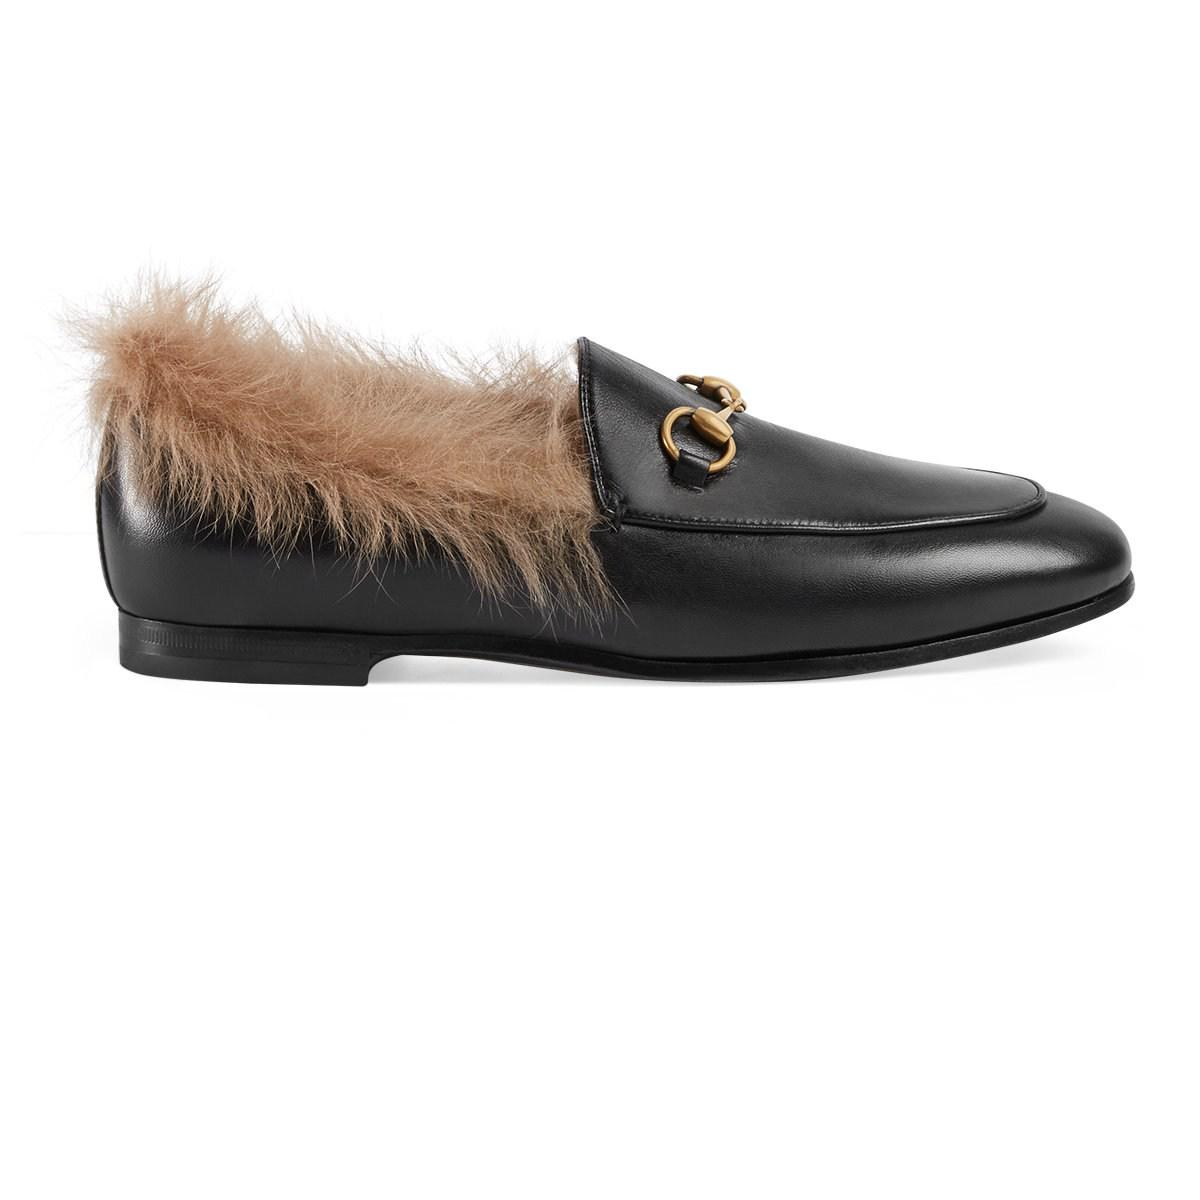 8c28edc8629 Gucci Jordaan Leather Loafers in Black - Lyst